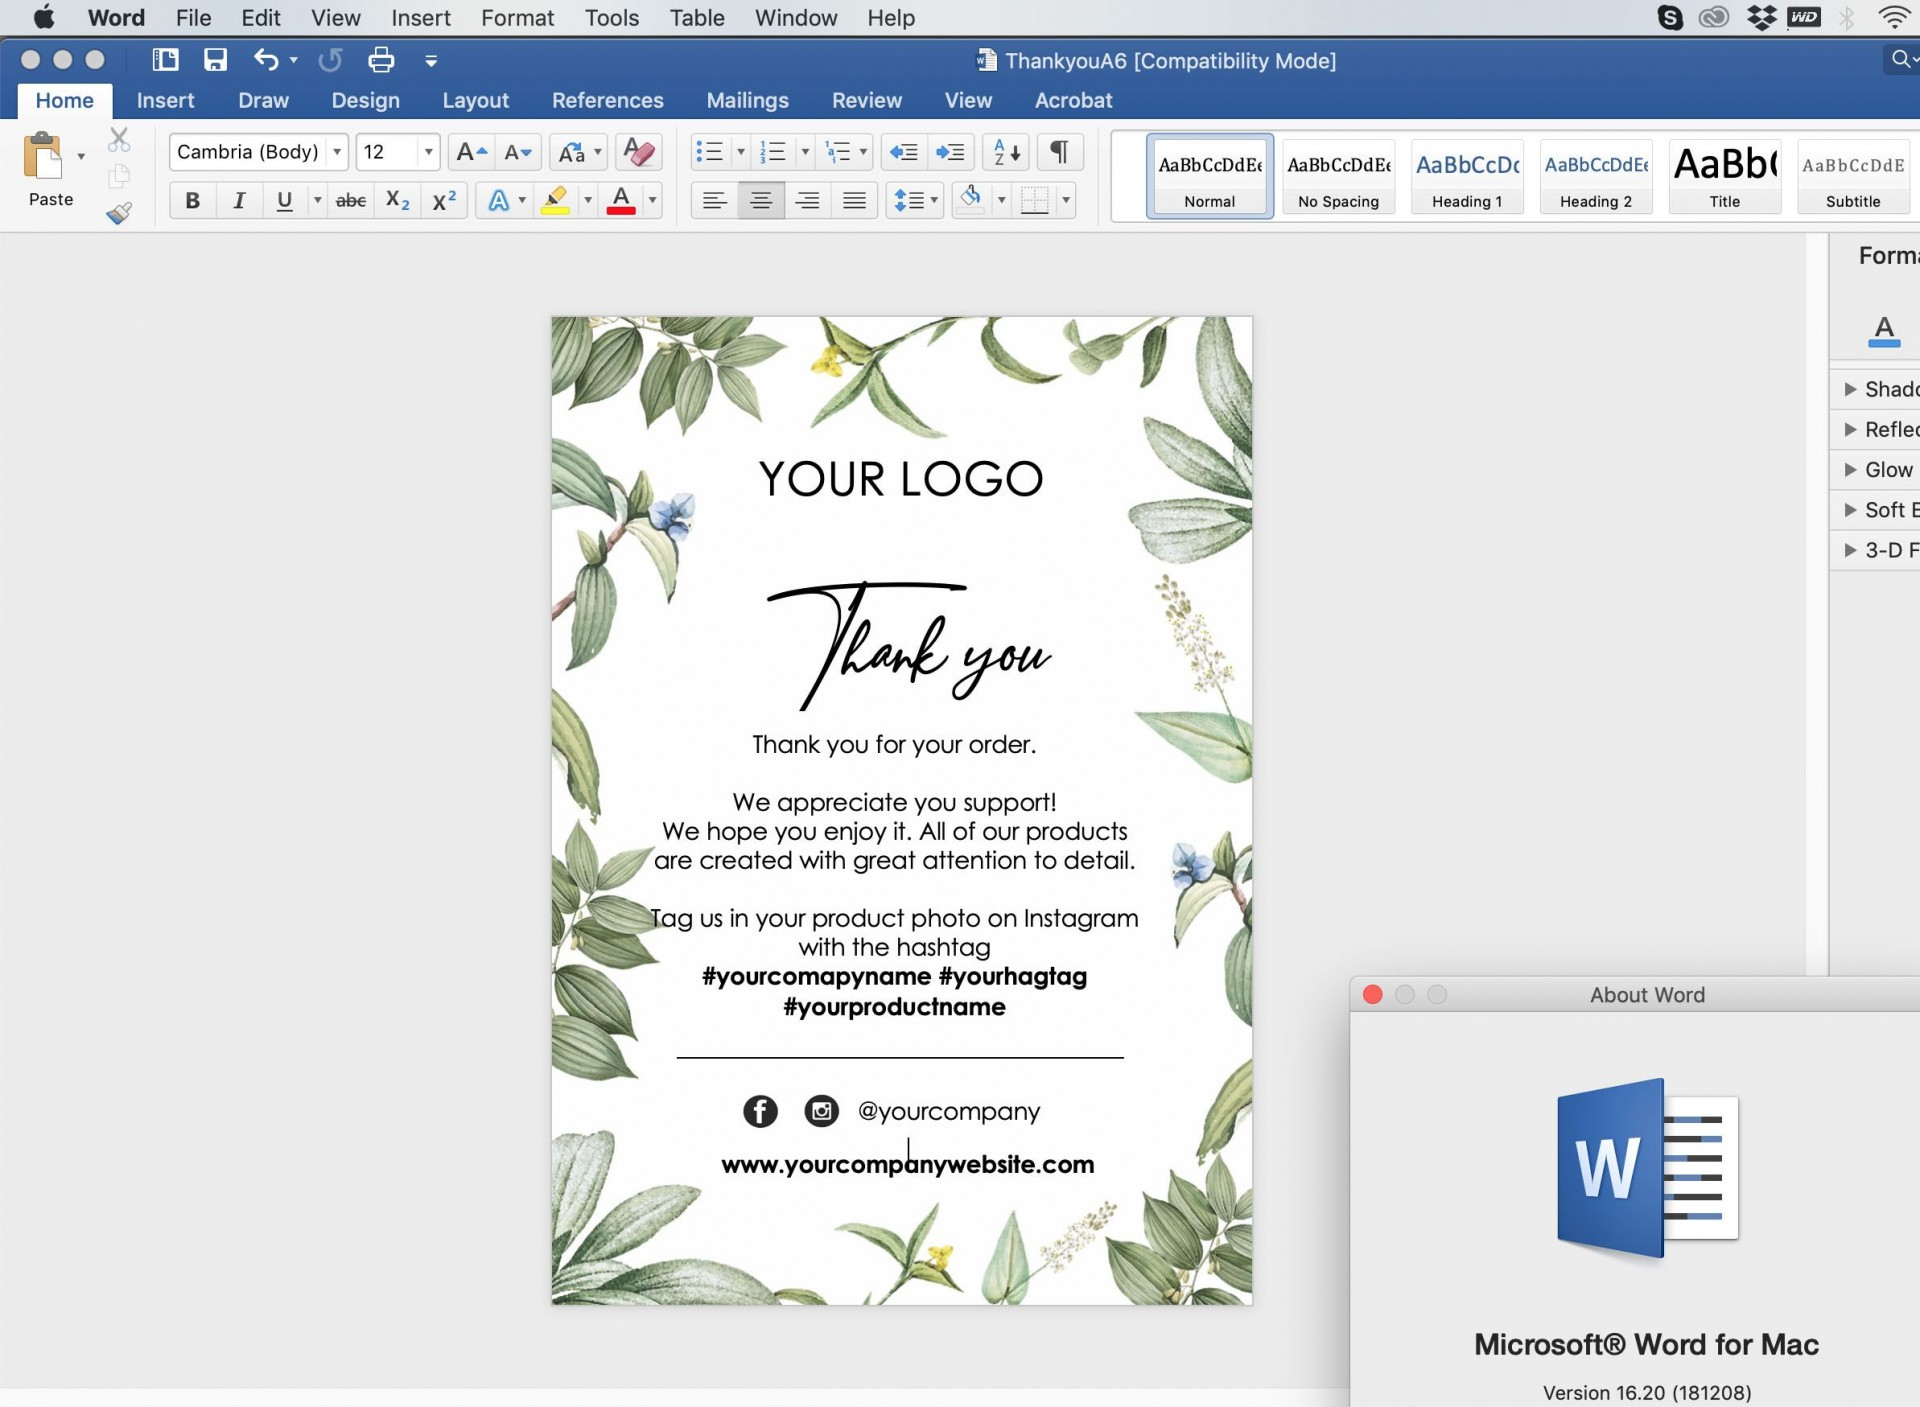 009 Awesome Thank You Note Template Microsoft Word High Resolution  Card Free Funeral Letter1920